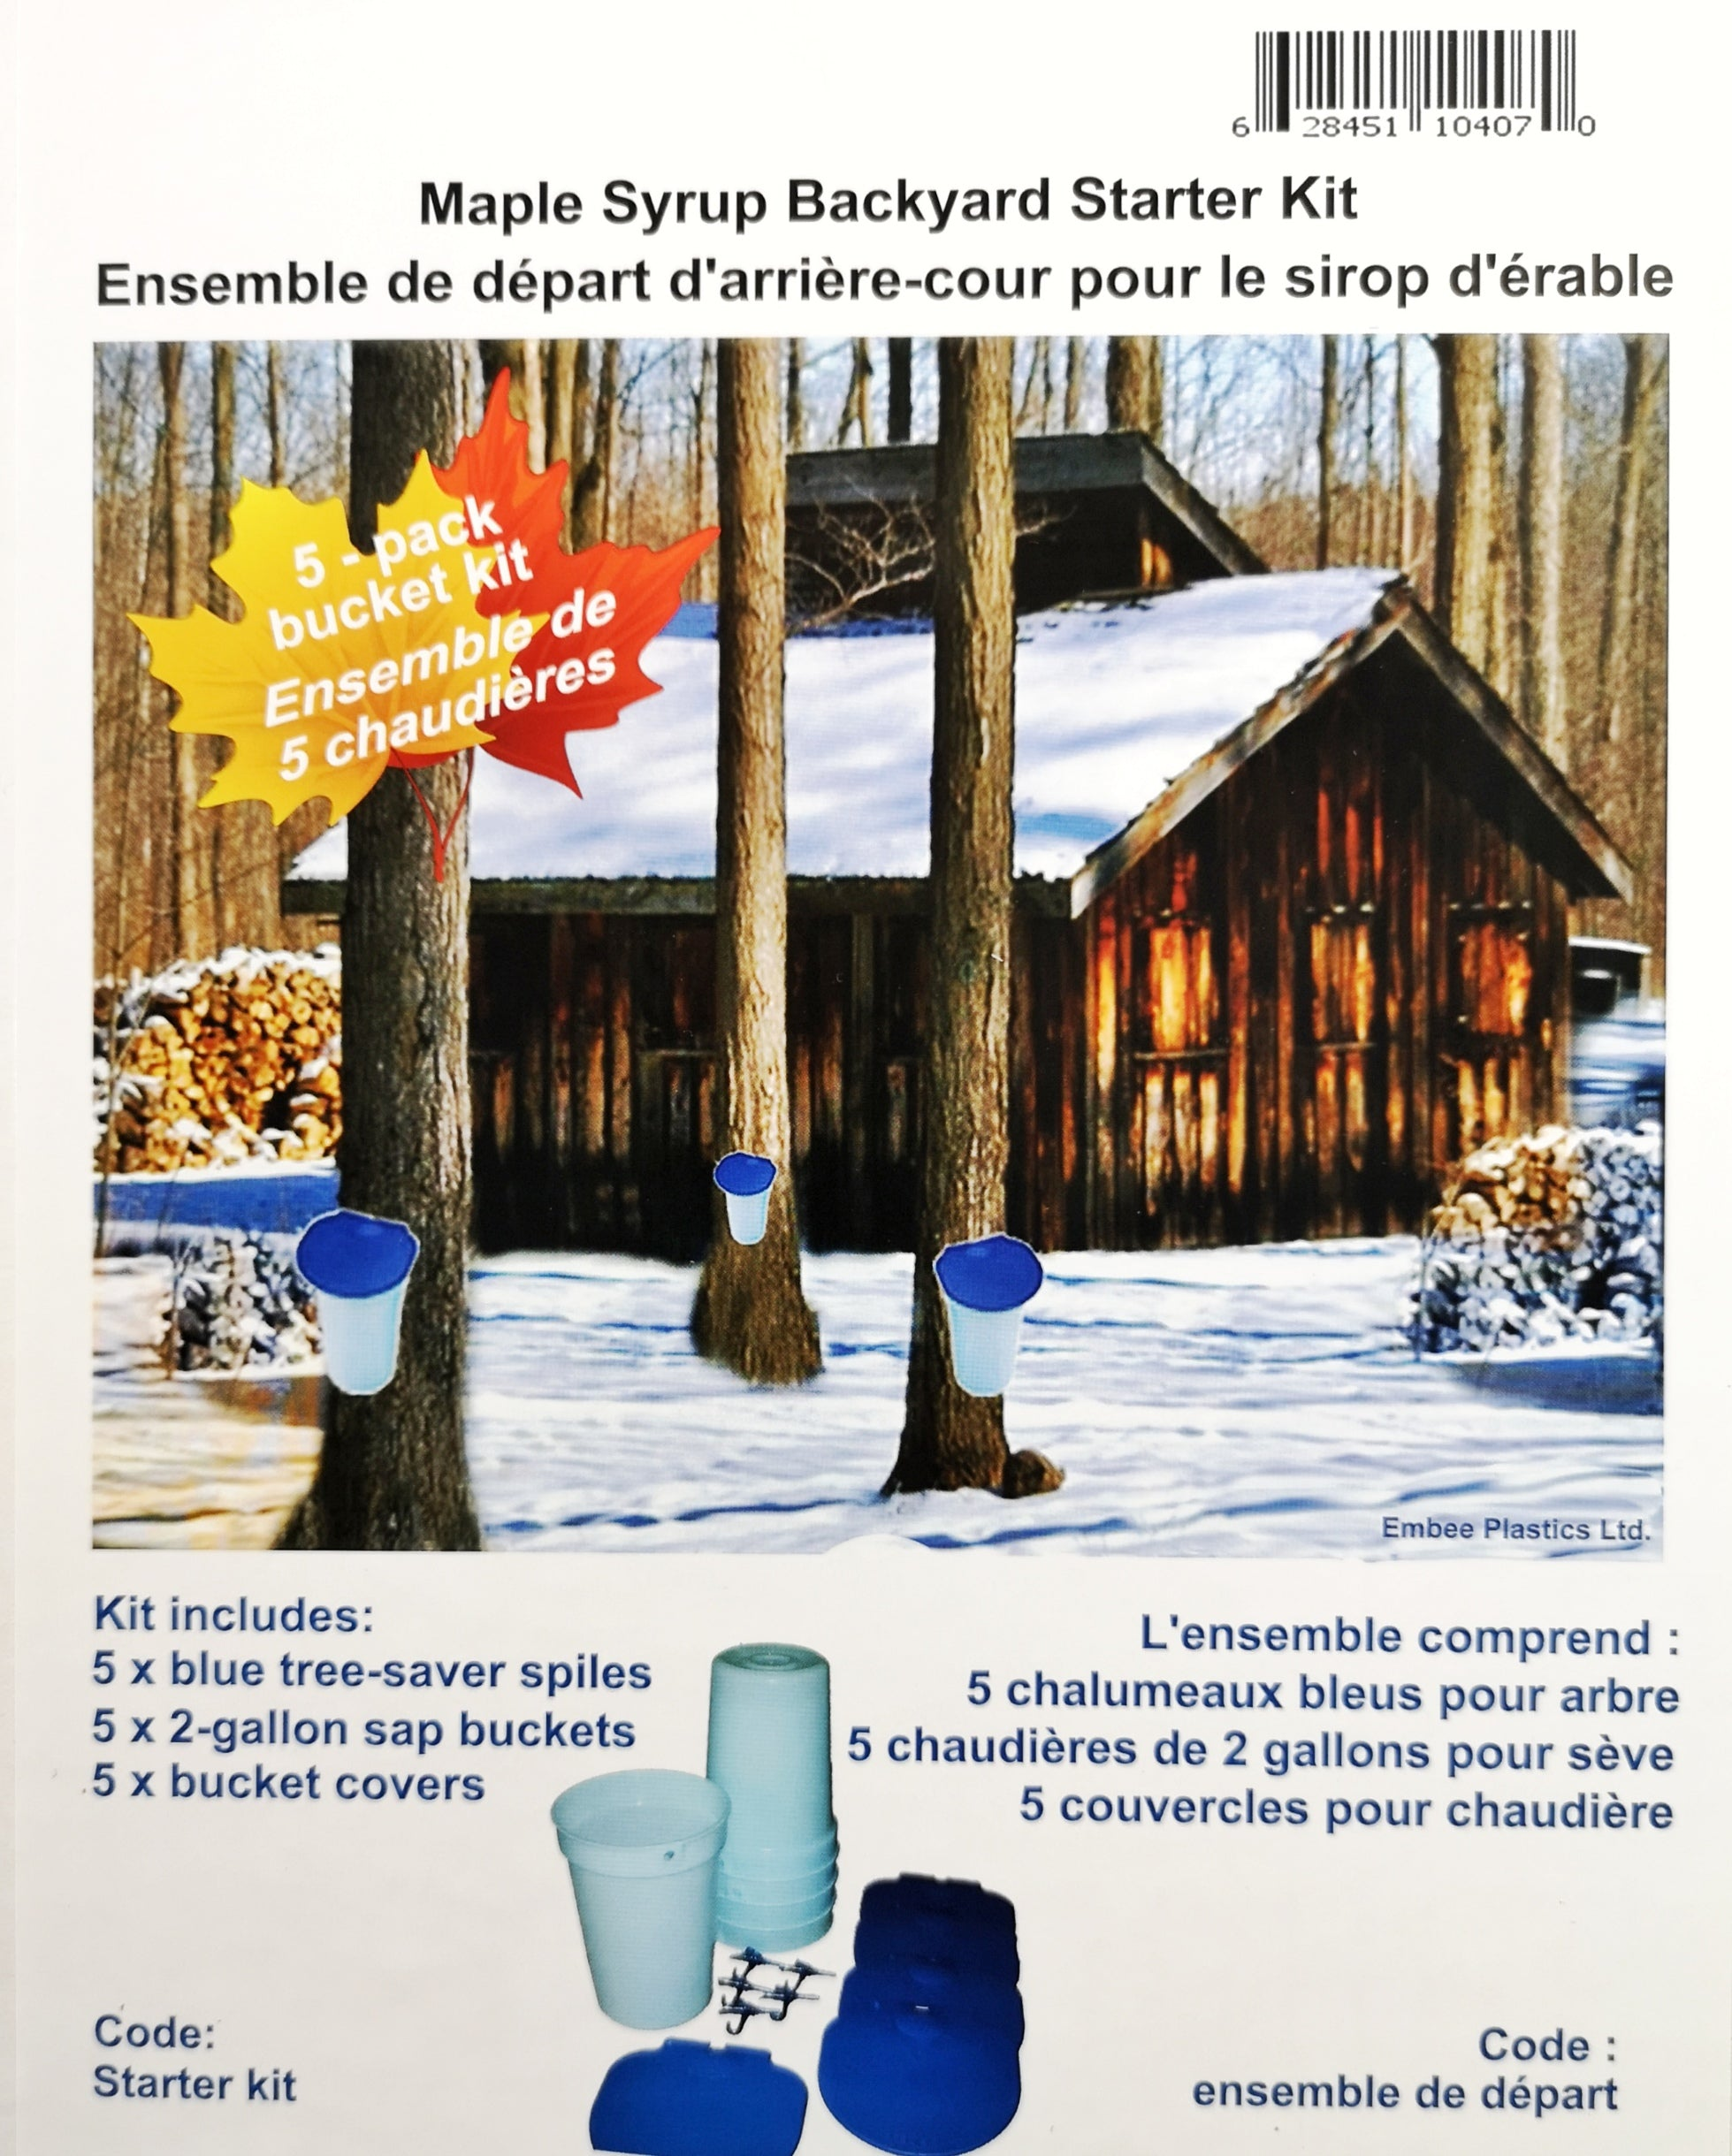 Maple Syrup Backyard Starter Kit